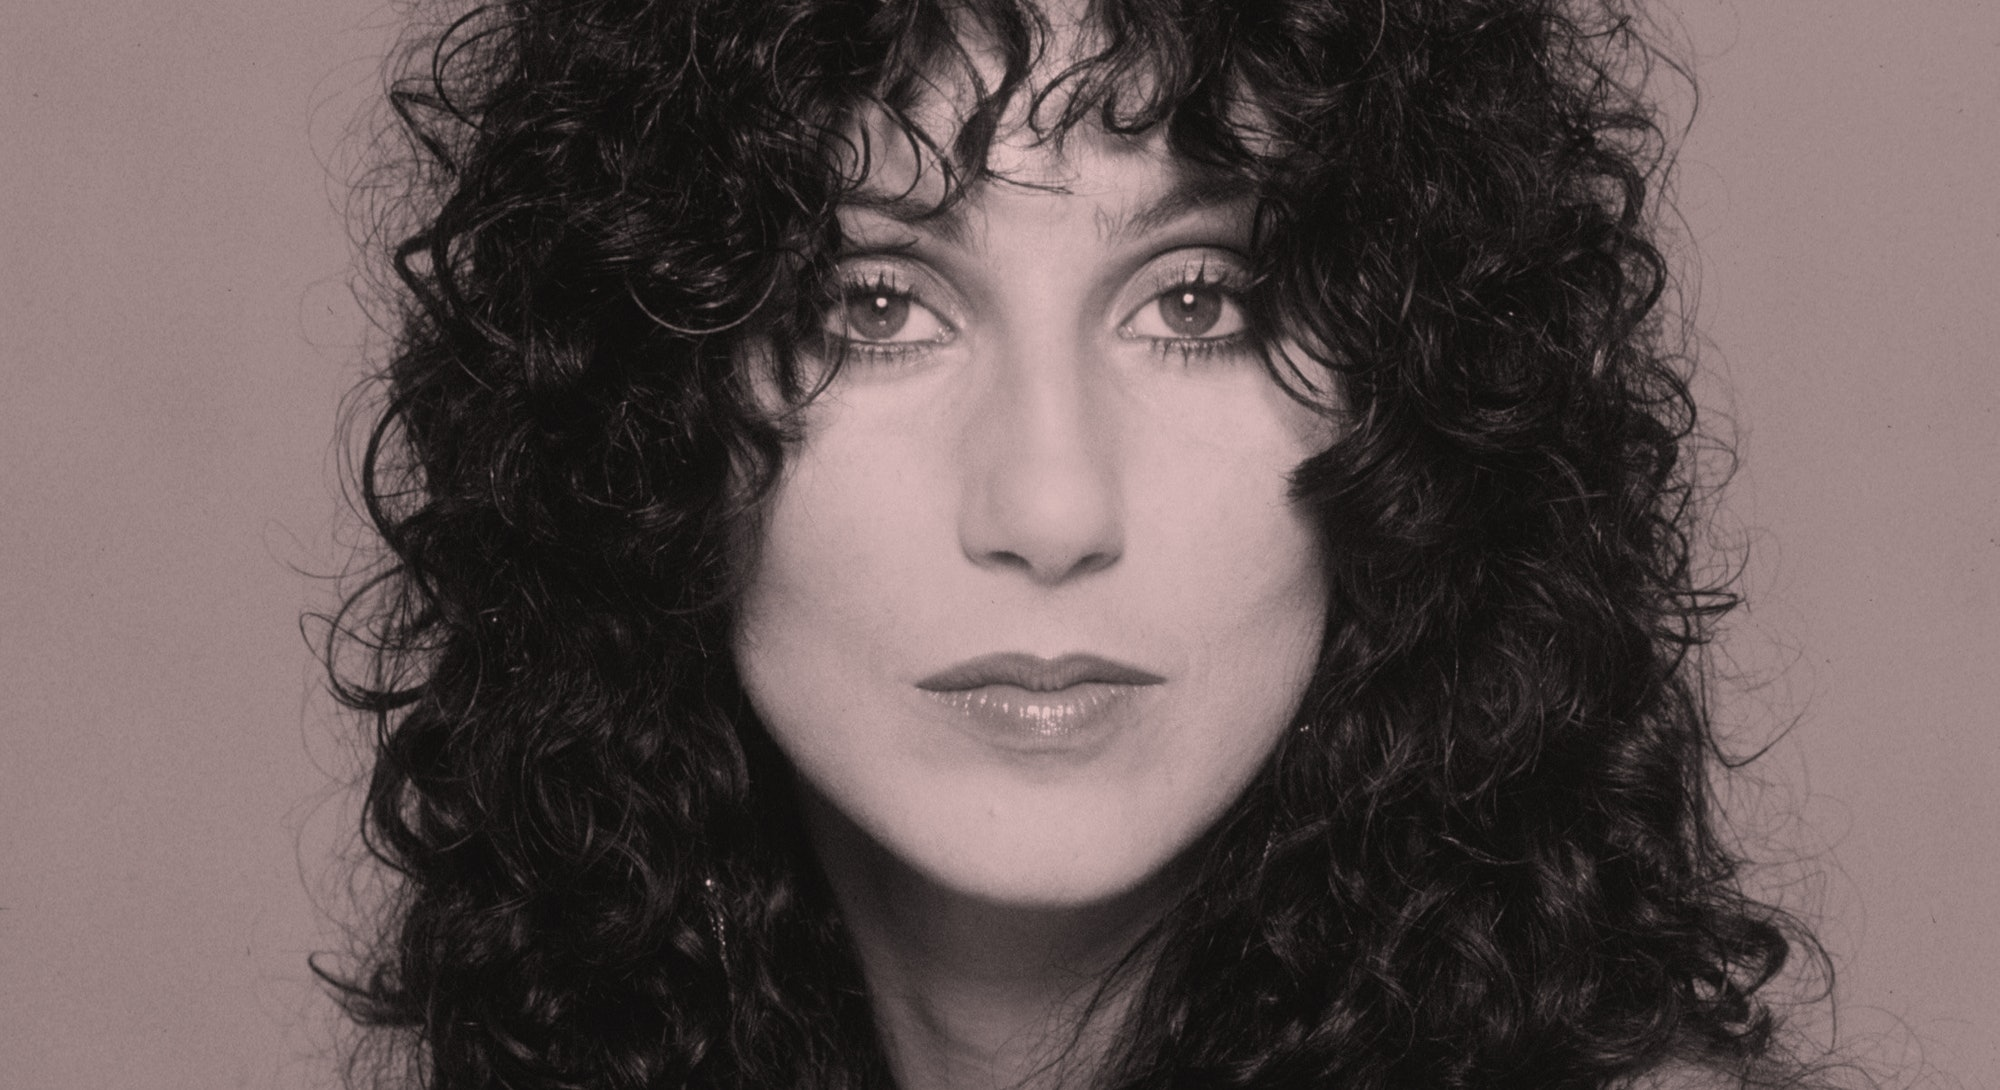 Cher with long curly hair.